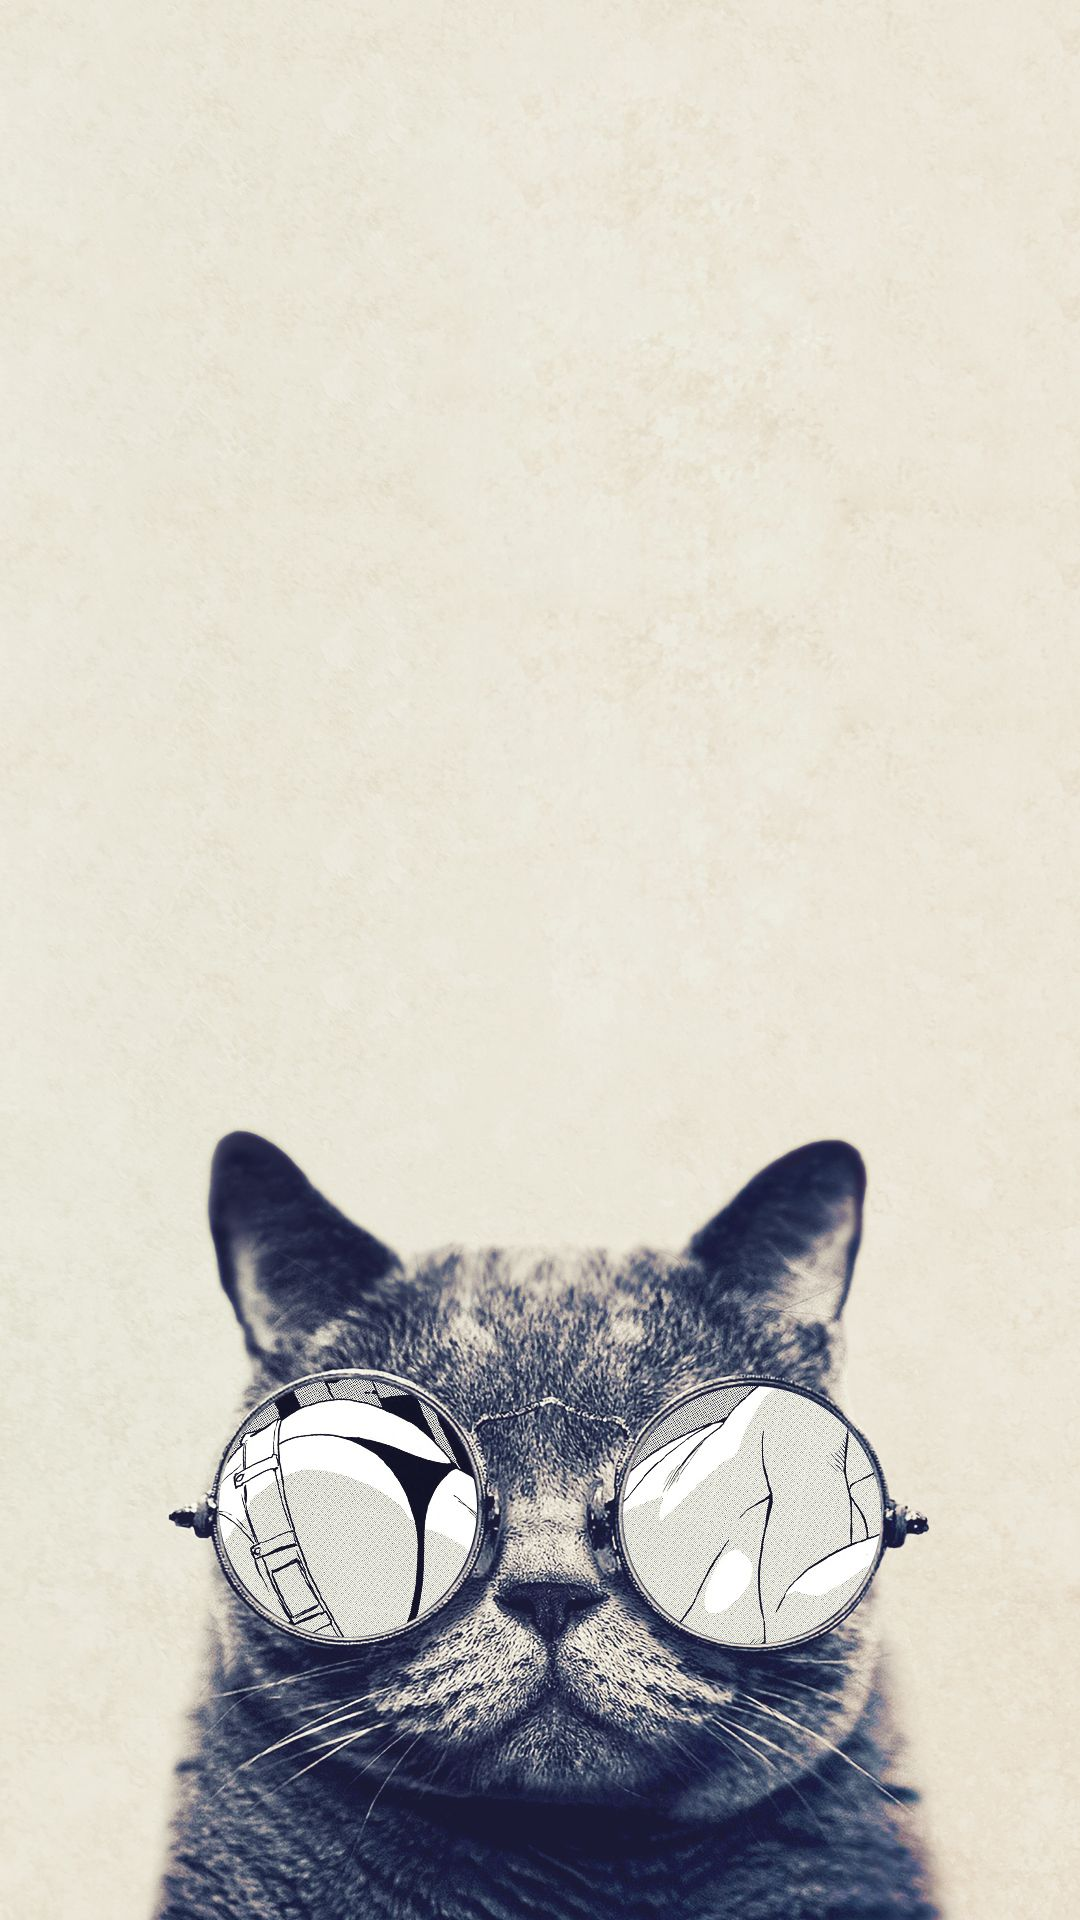 Animals Cool Cat Glasses Android Wallpaper Wallpapers Cat Phone Wallpaper Hipster Wallpaper Cat Wallpaper